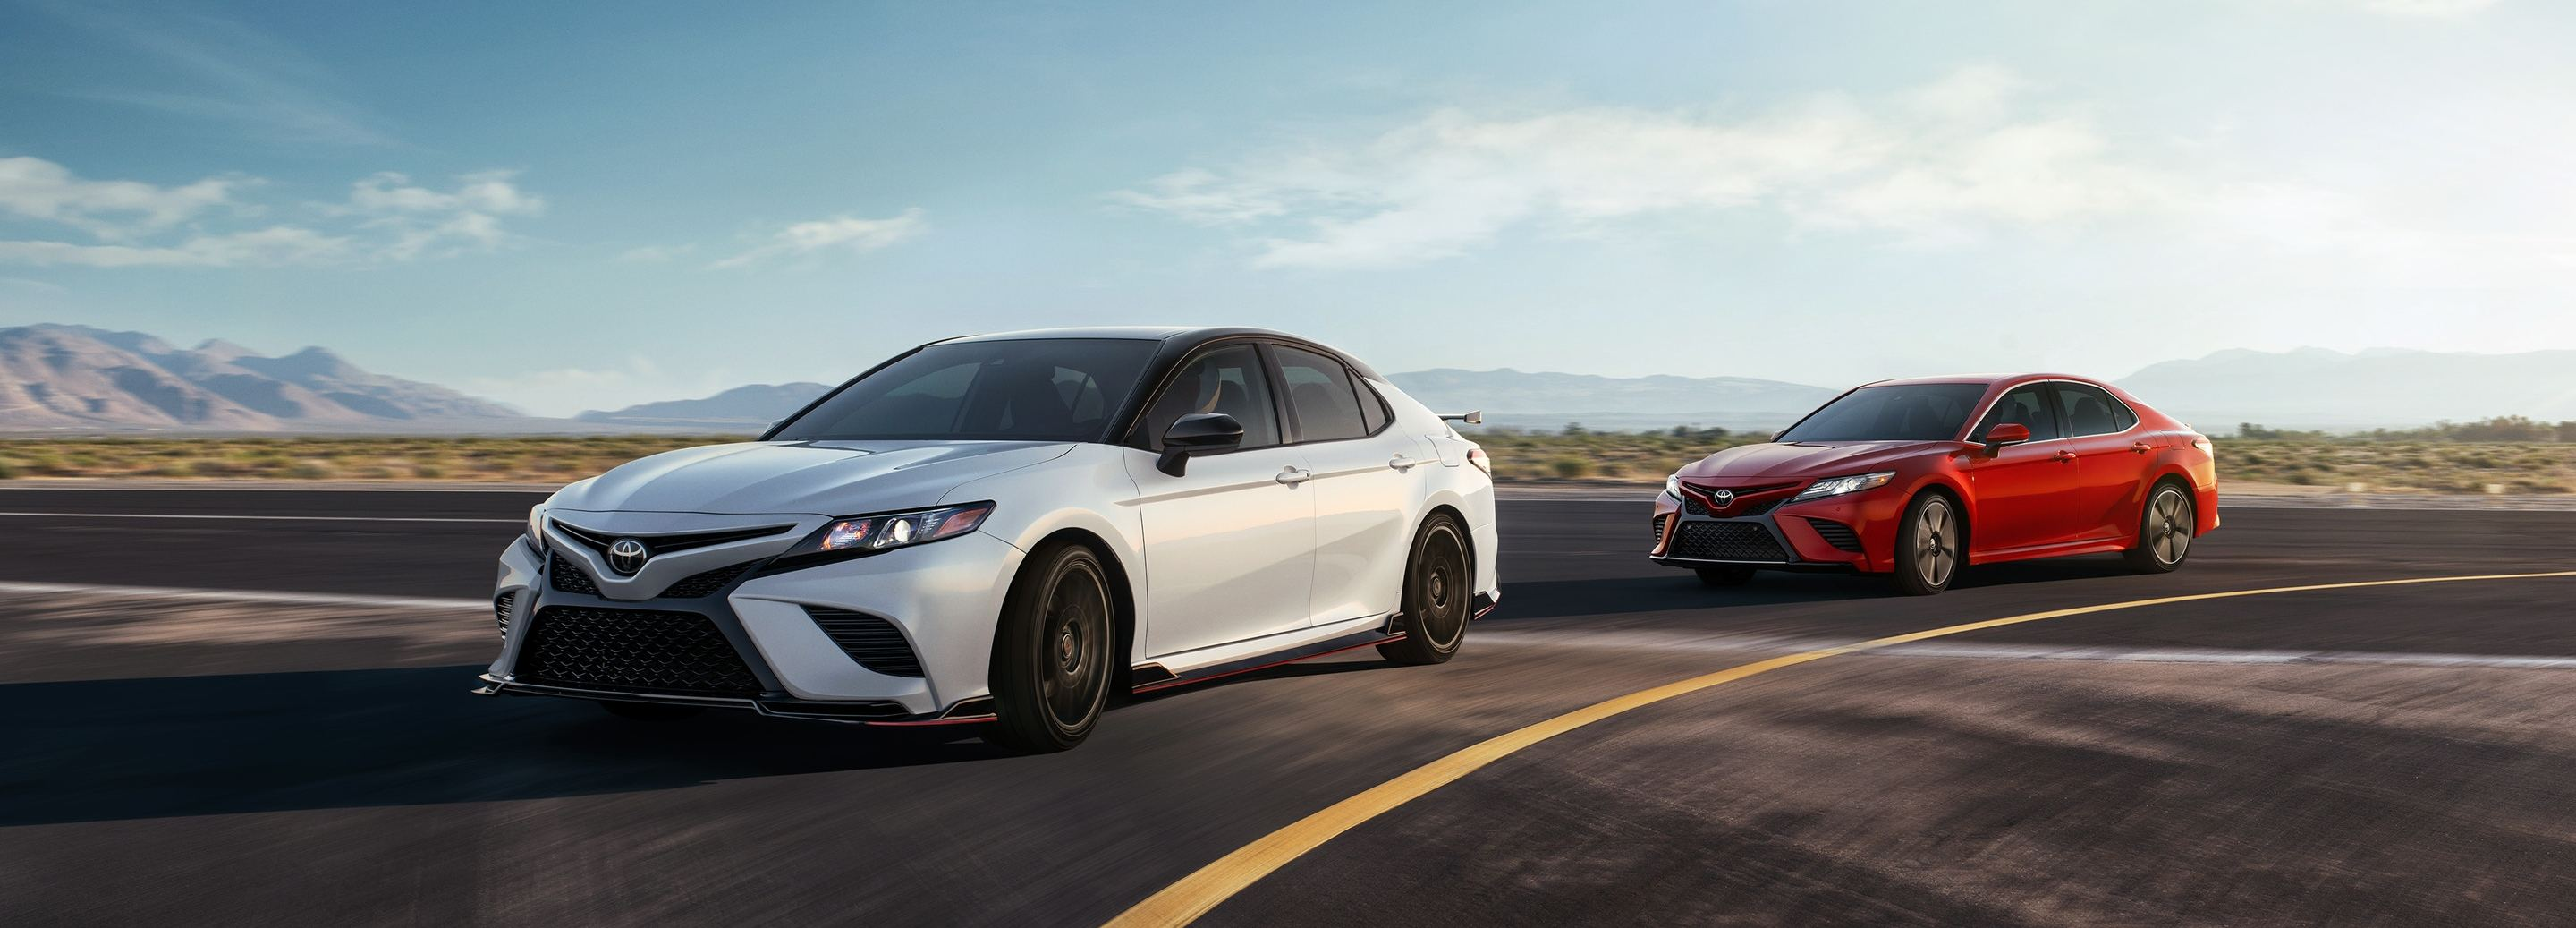 2020 Toyota Camry Leasing near Milpitas, CA